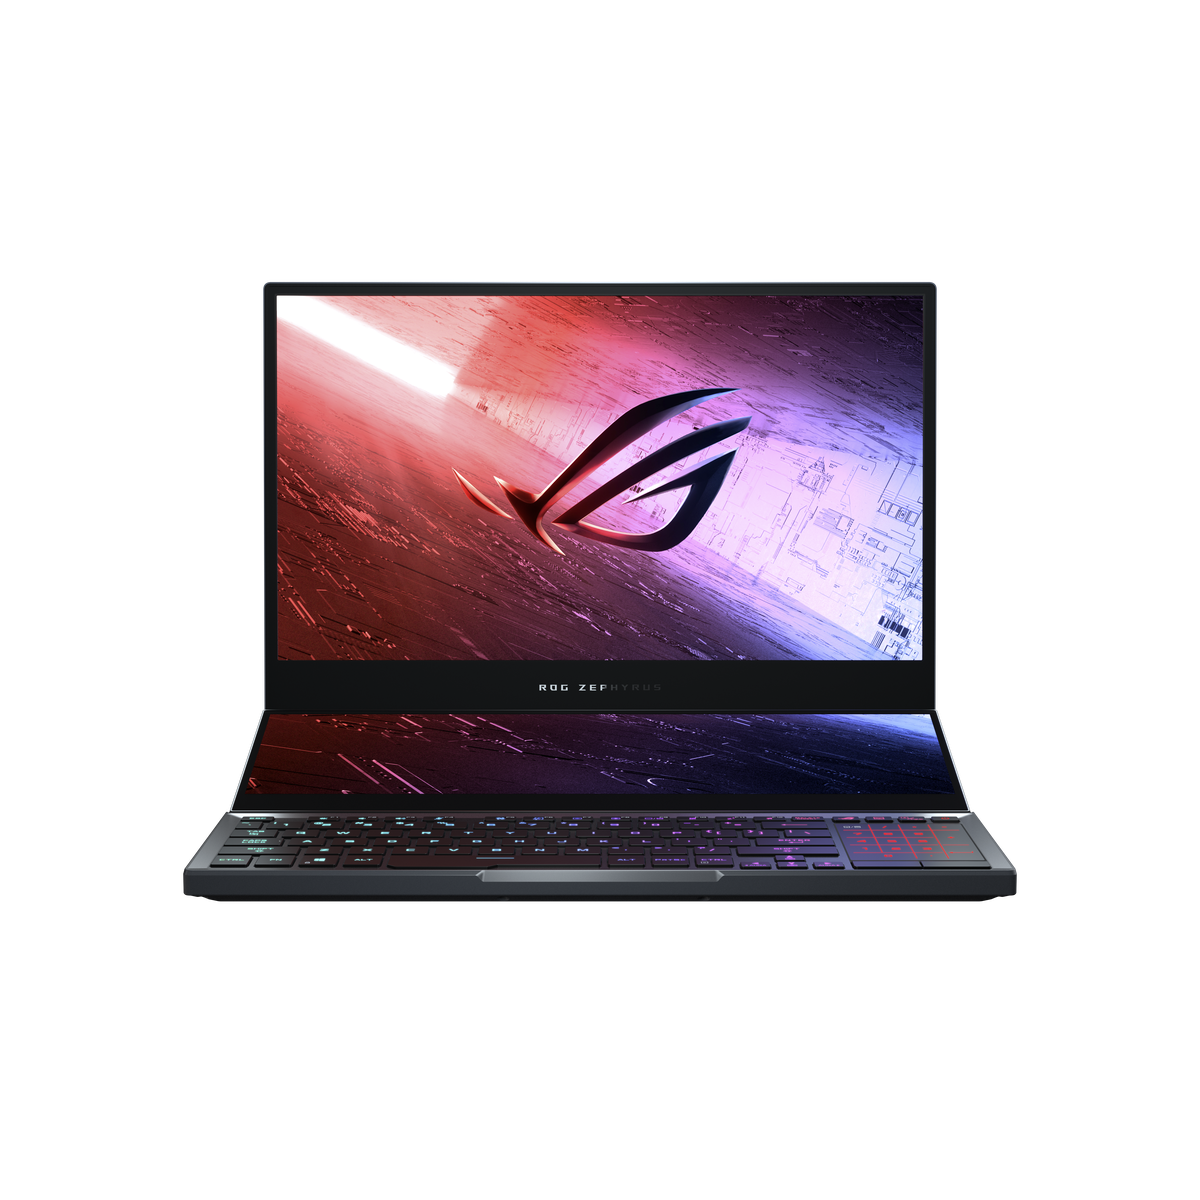 Asus Rog Zephyrus Duo 15 Is A Gaming Laptop With Two Screens Wilson S Media